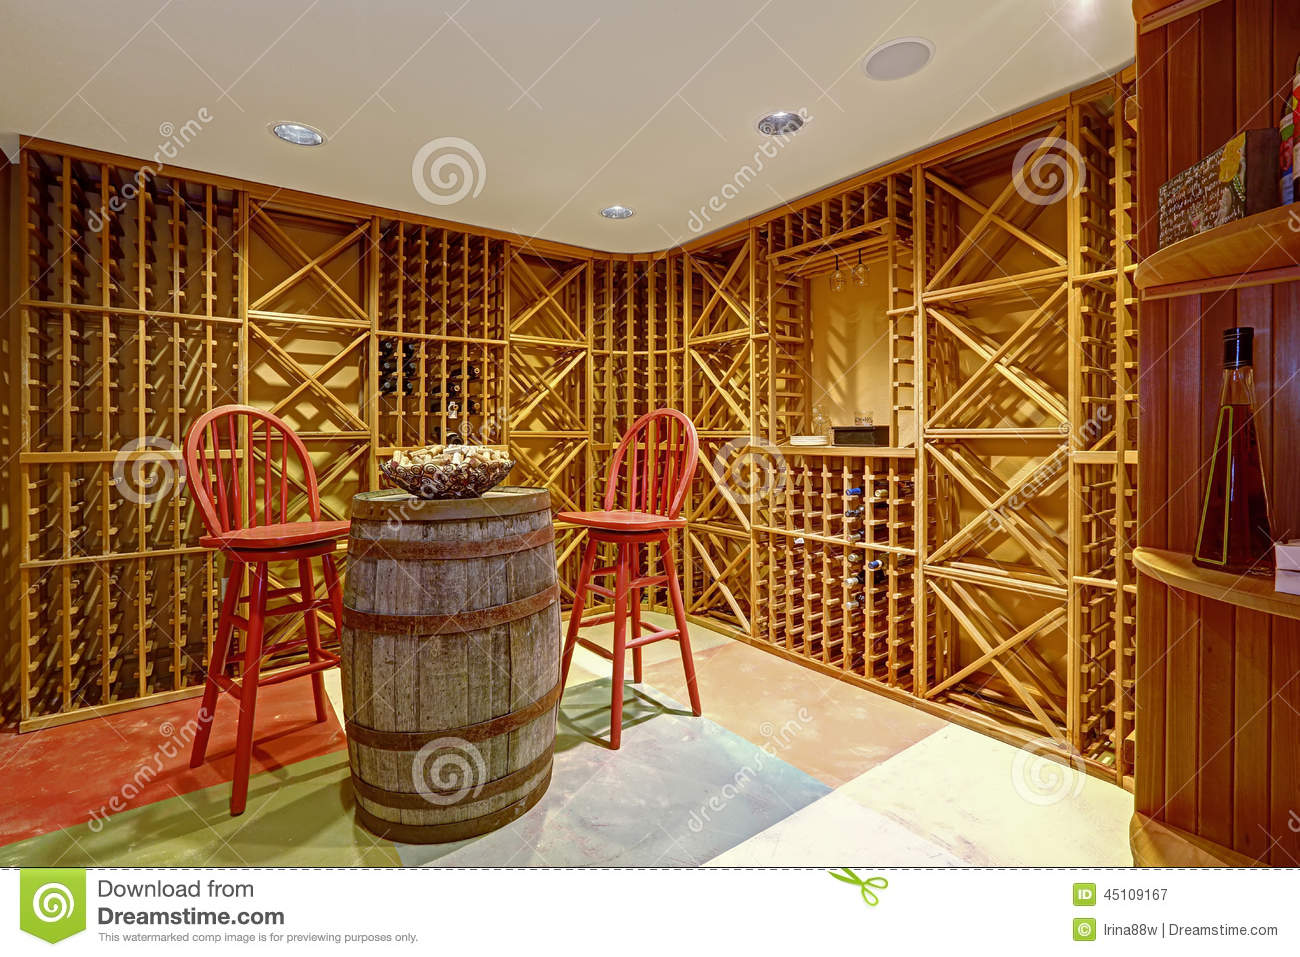 7 166 Wine Basement Photos Free Royalty Free Stock Photos From Dreamstime